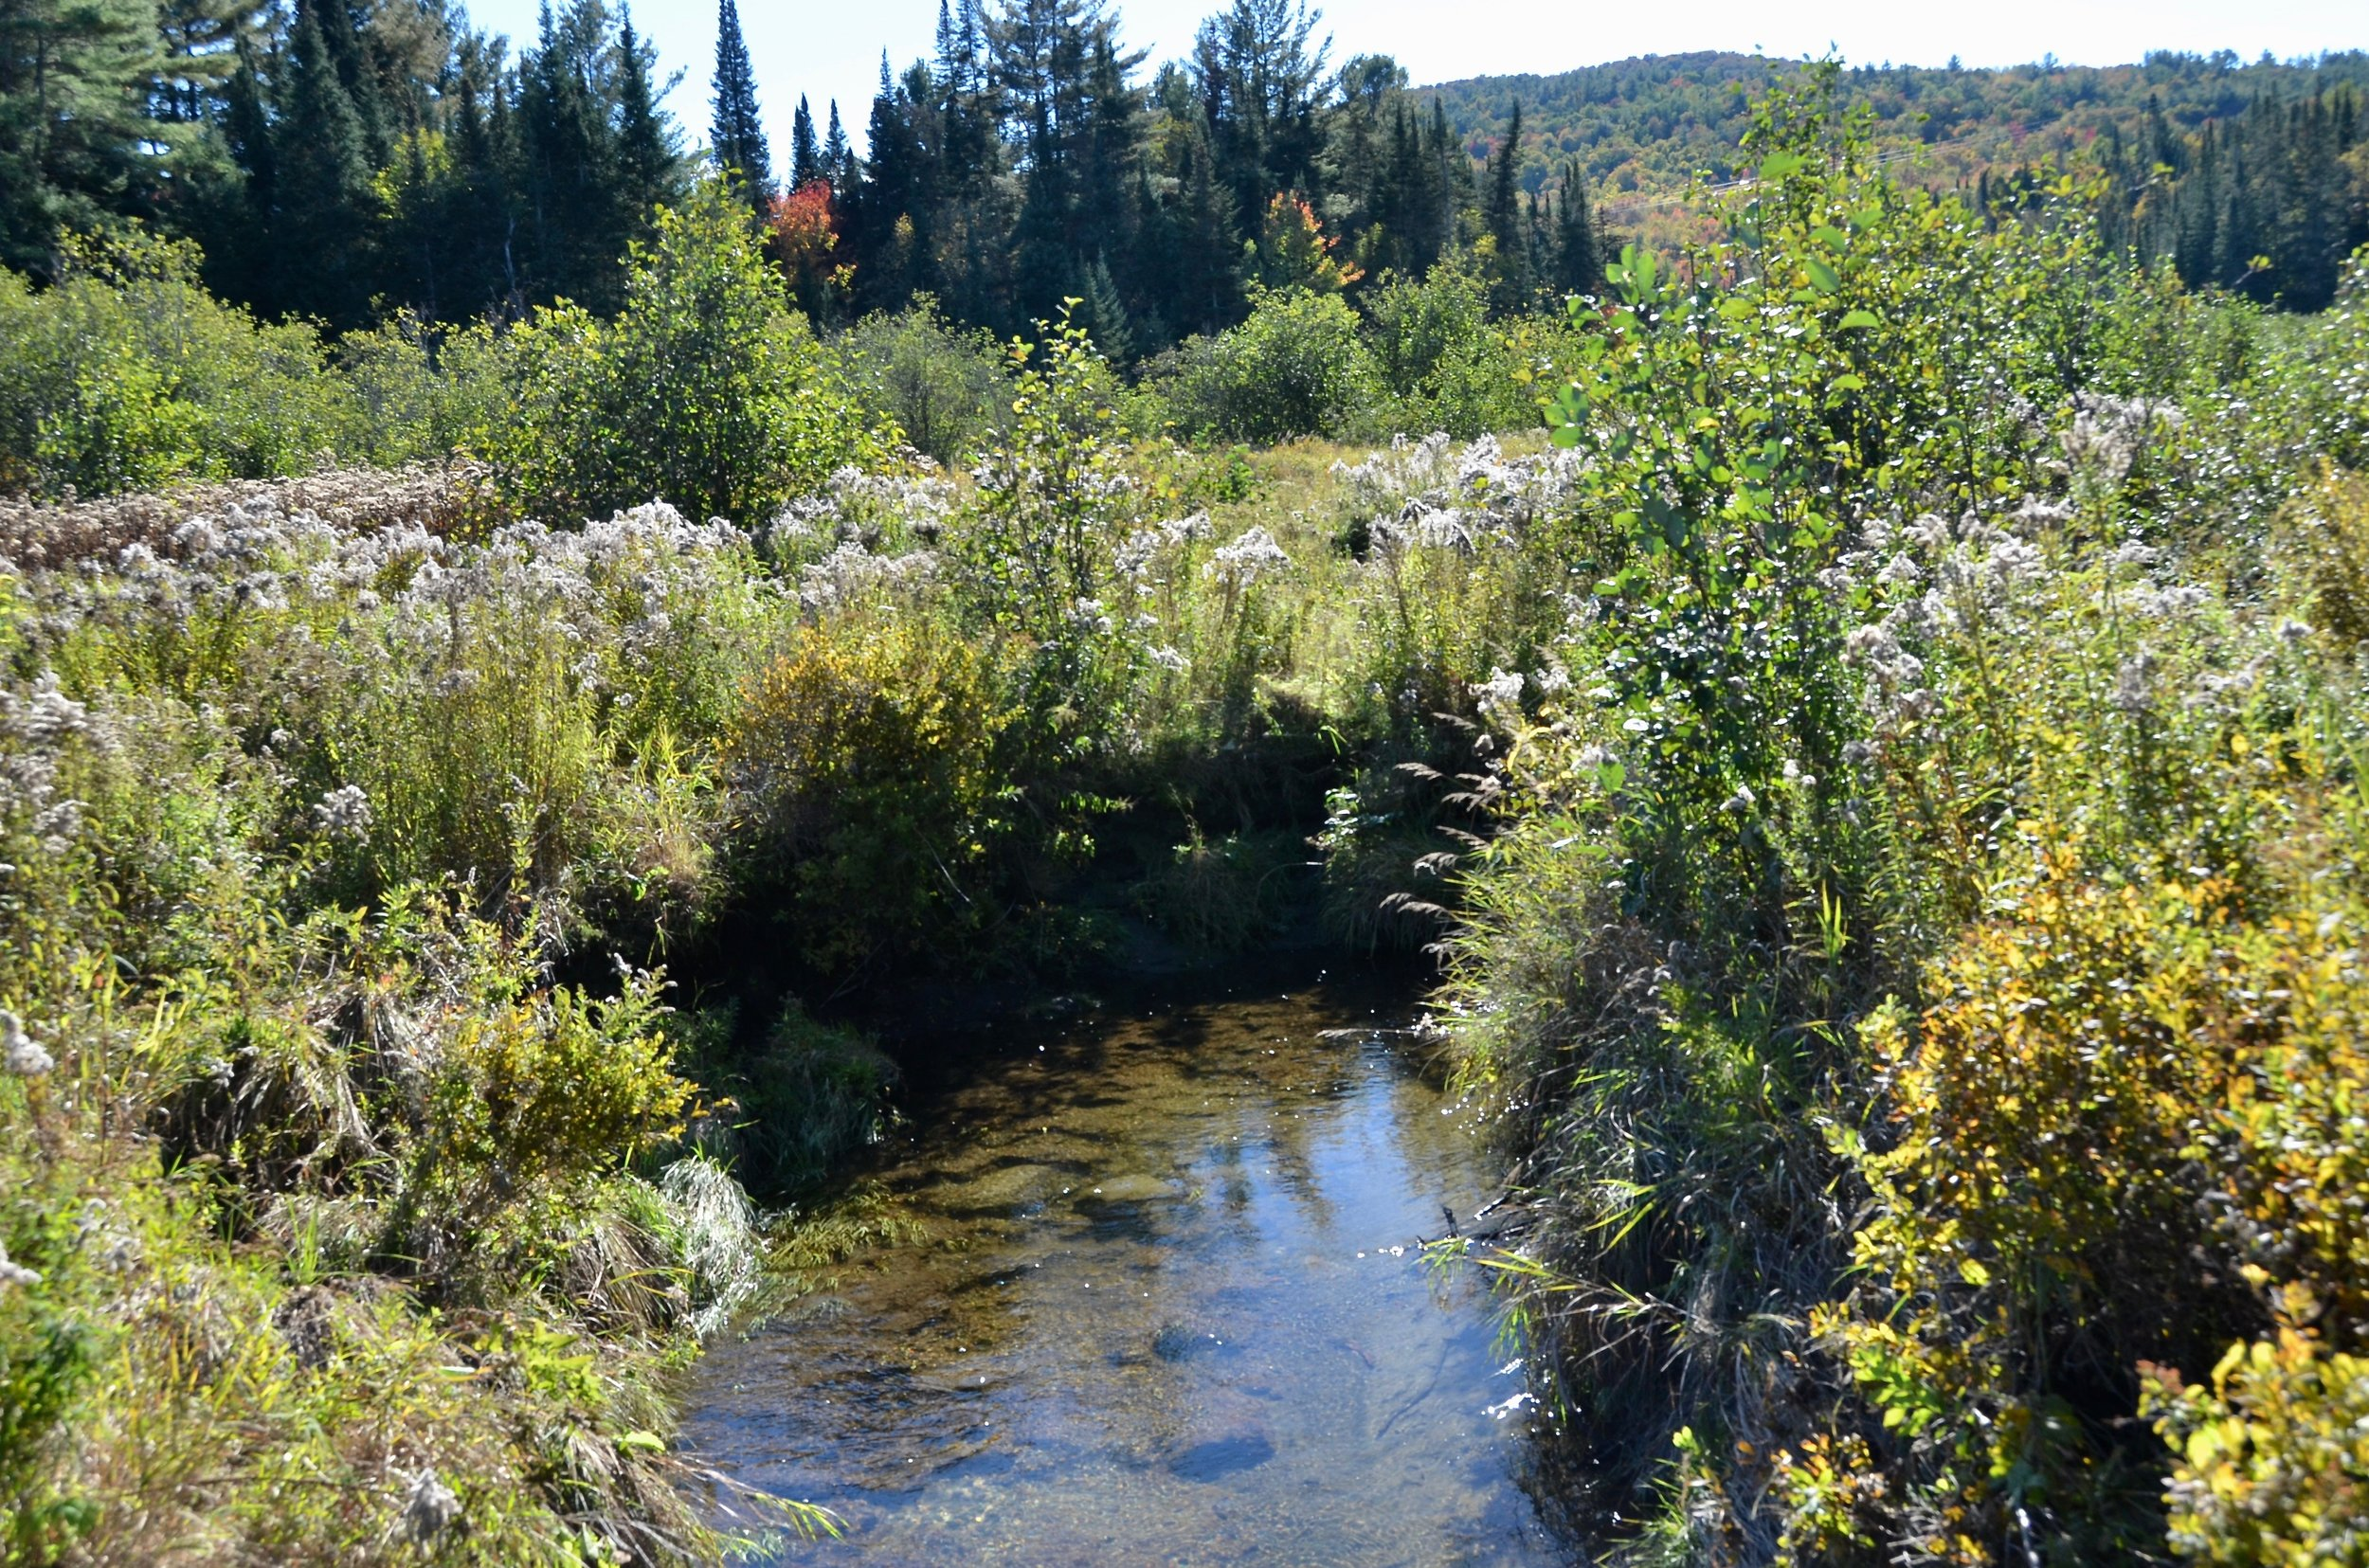 Salmon Hole Brook flows through the Creamery Pond conservation area. The brook originates several miles away within the Cooley-Jericho Community Forest, and flows though lands within the Bronson Hill Conservation Area, all conserved by ACT.